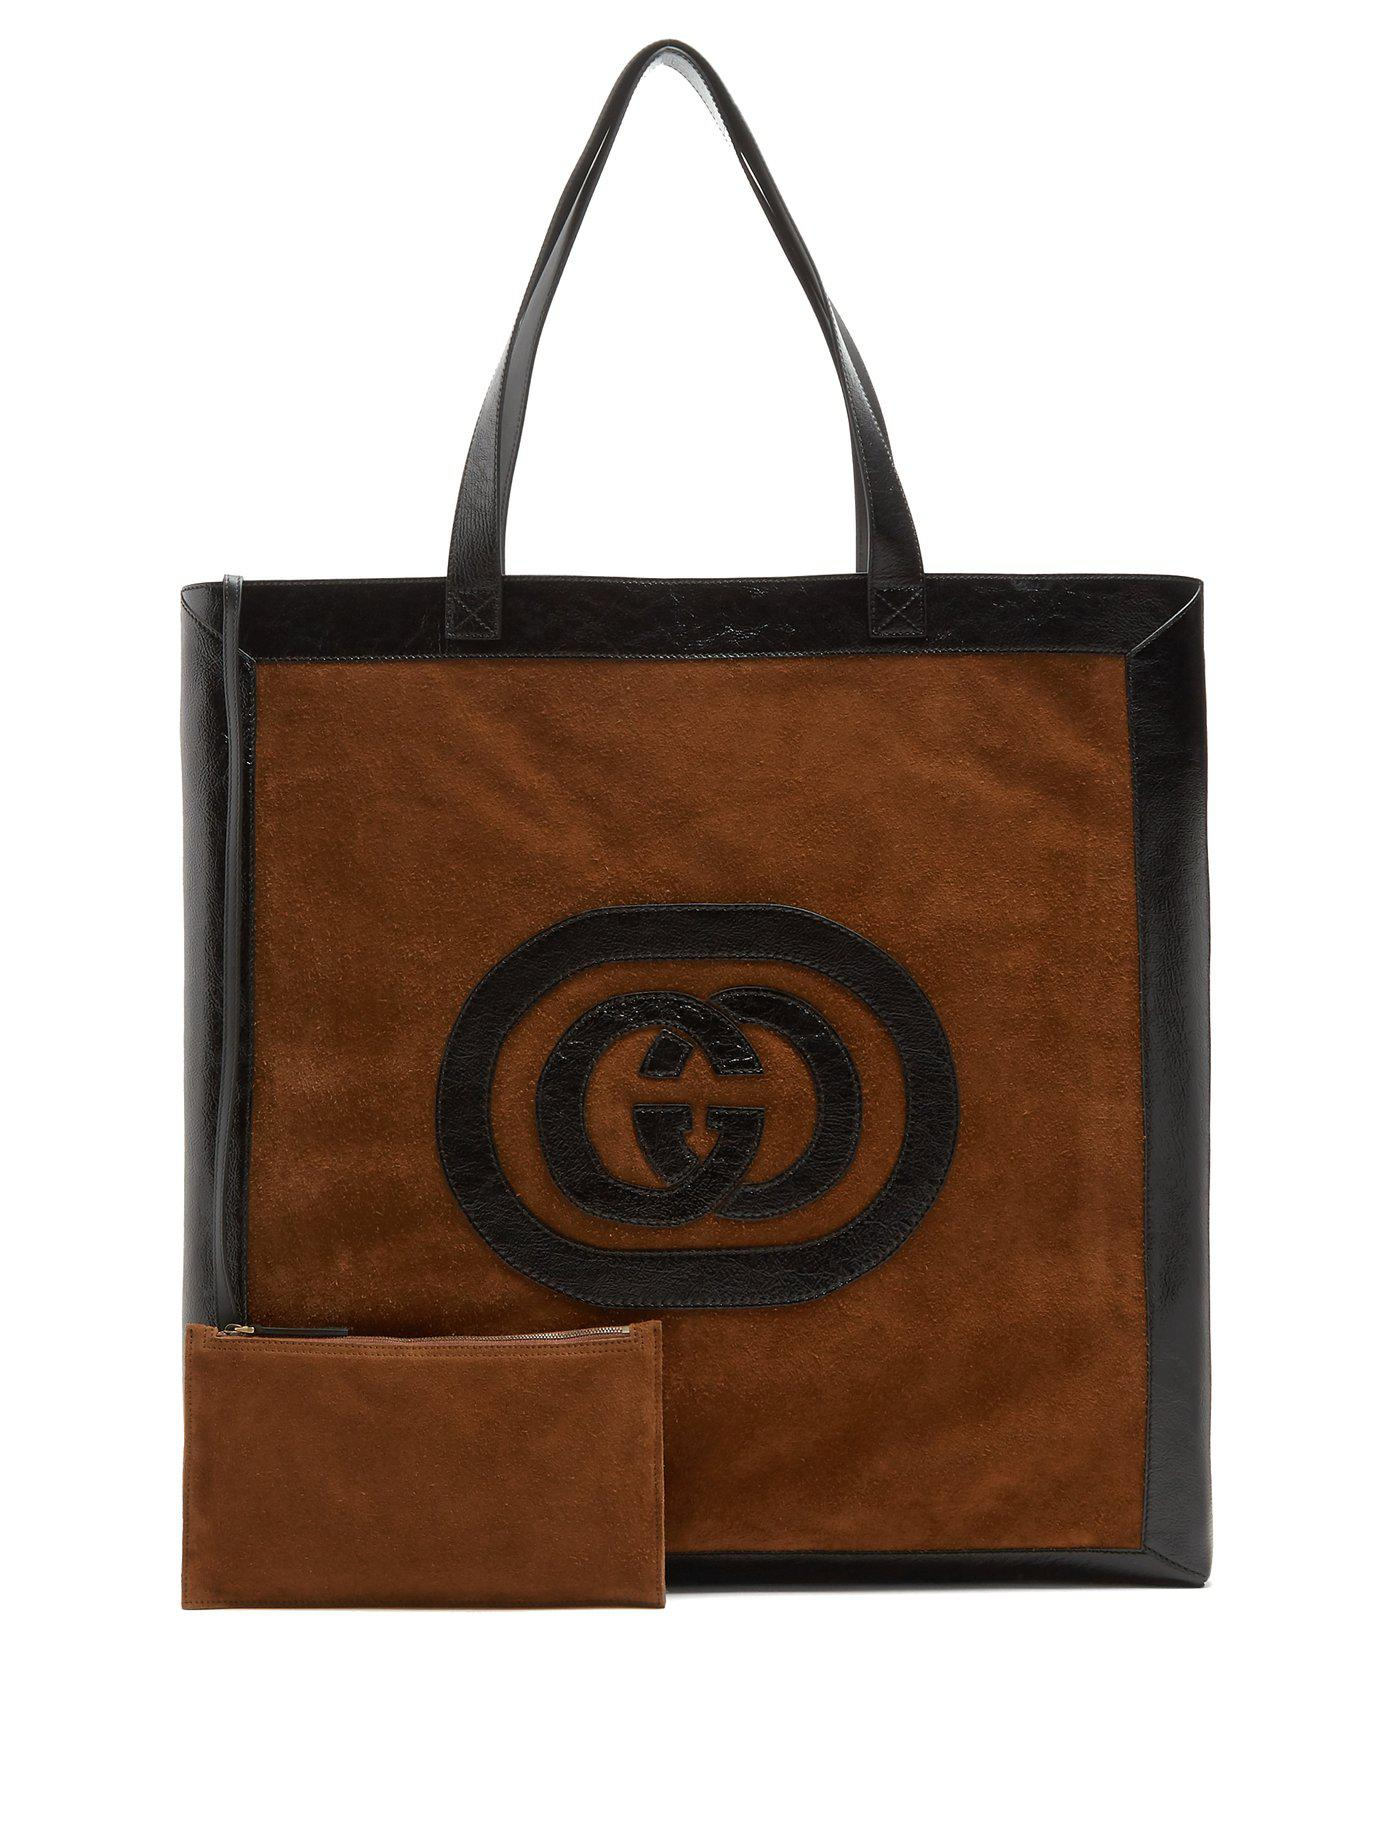 5364b9feb792 Gucci. Women's Ophidia Large Suede Tote Bag